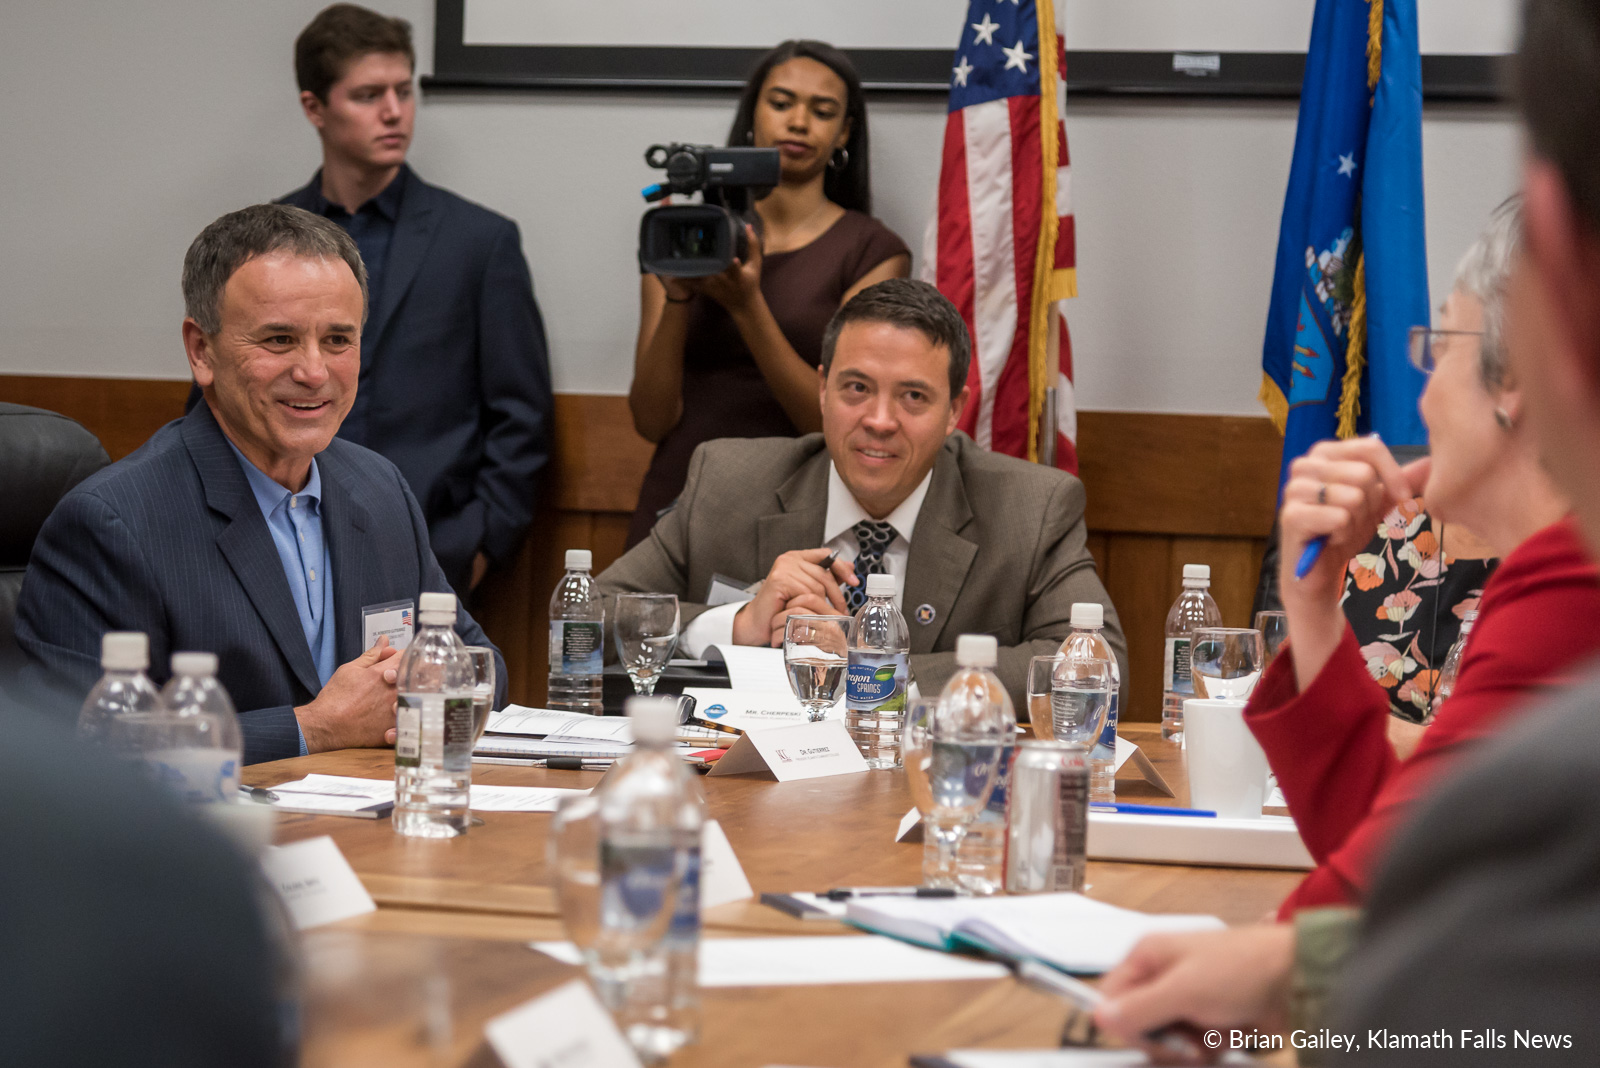 Dr. Roberto Gutierrez, President of Klamath Community College discusses the future of education in the Klamath Basin with Air Force Secretary, Heather Wilson. November 3, 2018 (Brian Gailey)